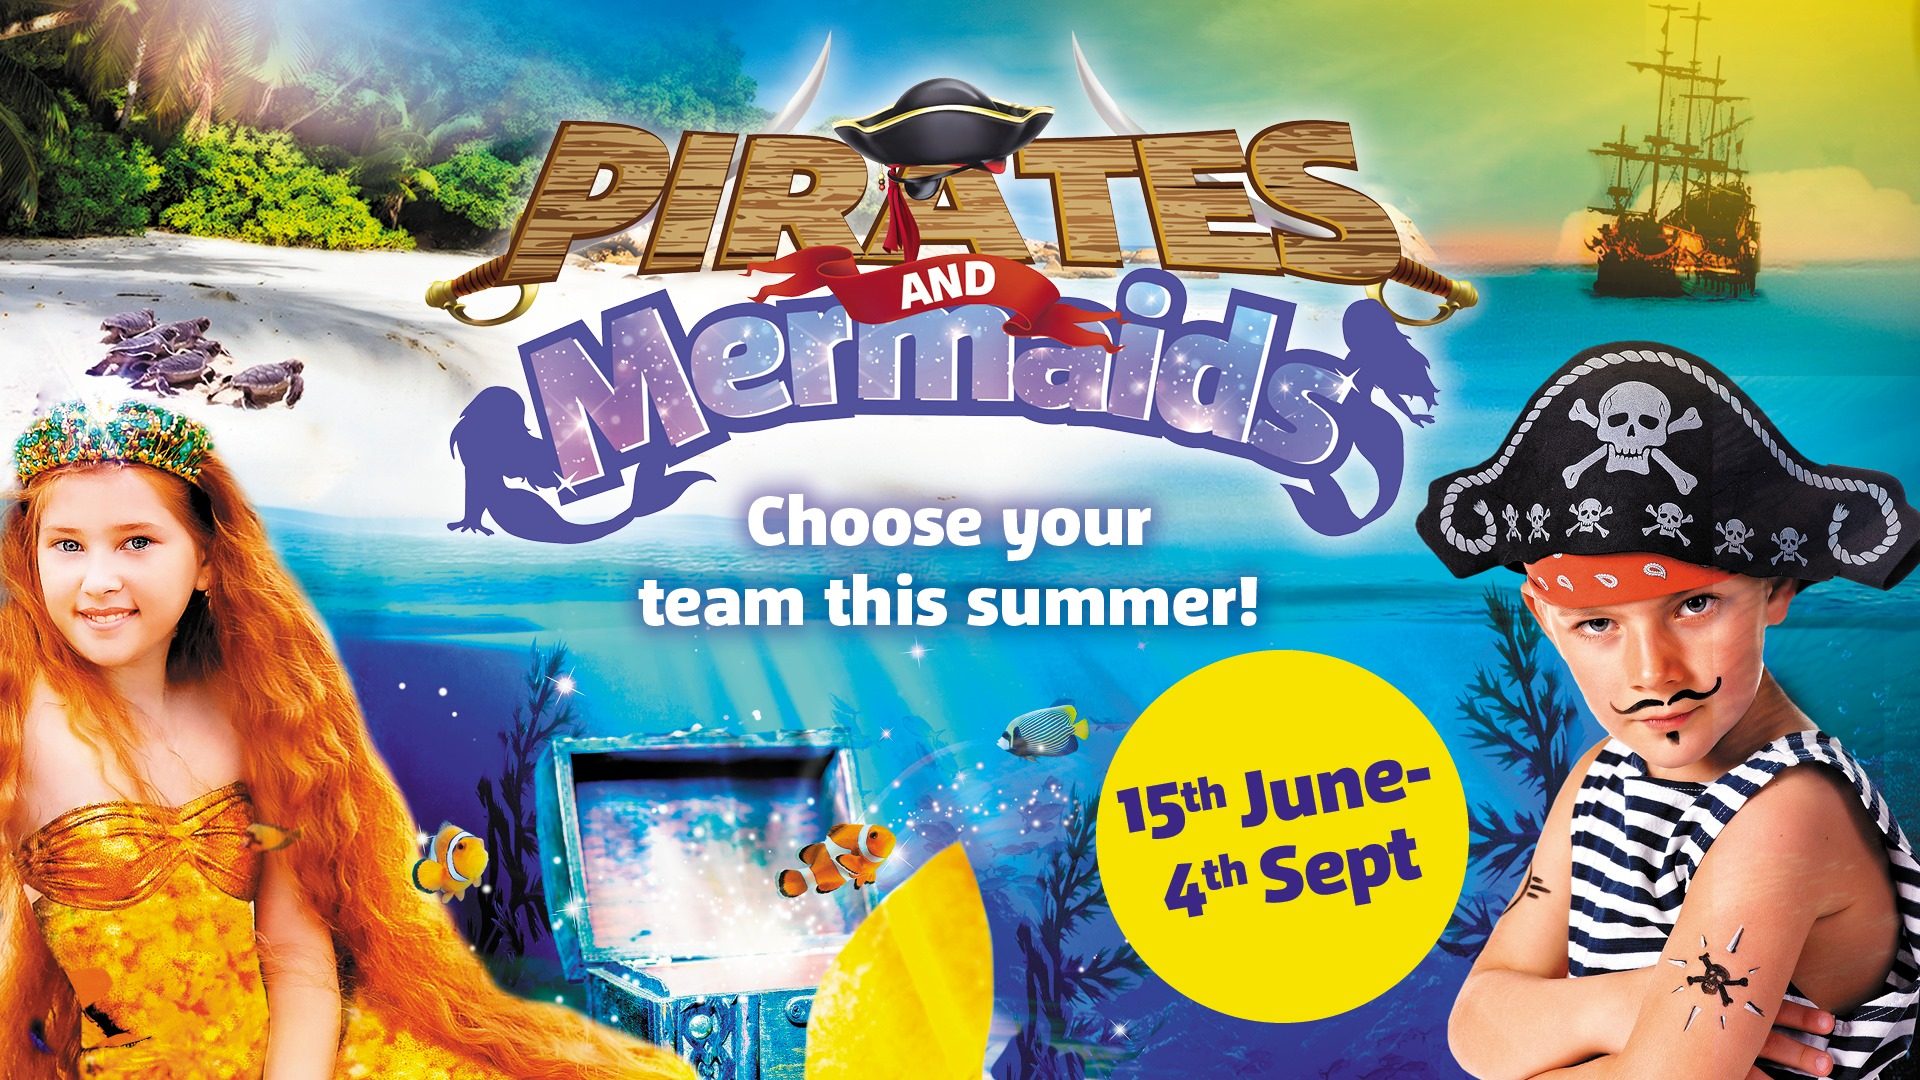 Pirates & Mermaids At Weymouth SEA LIFE Adventure Park